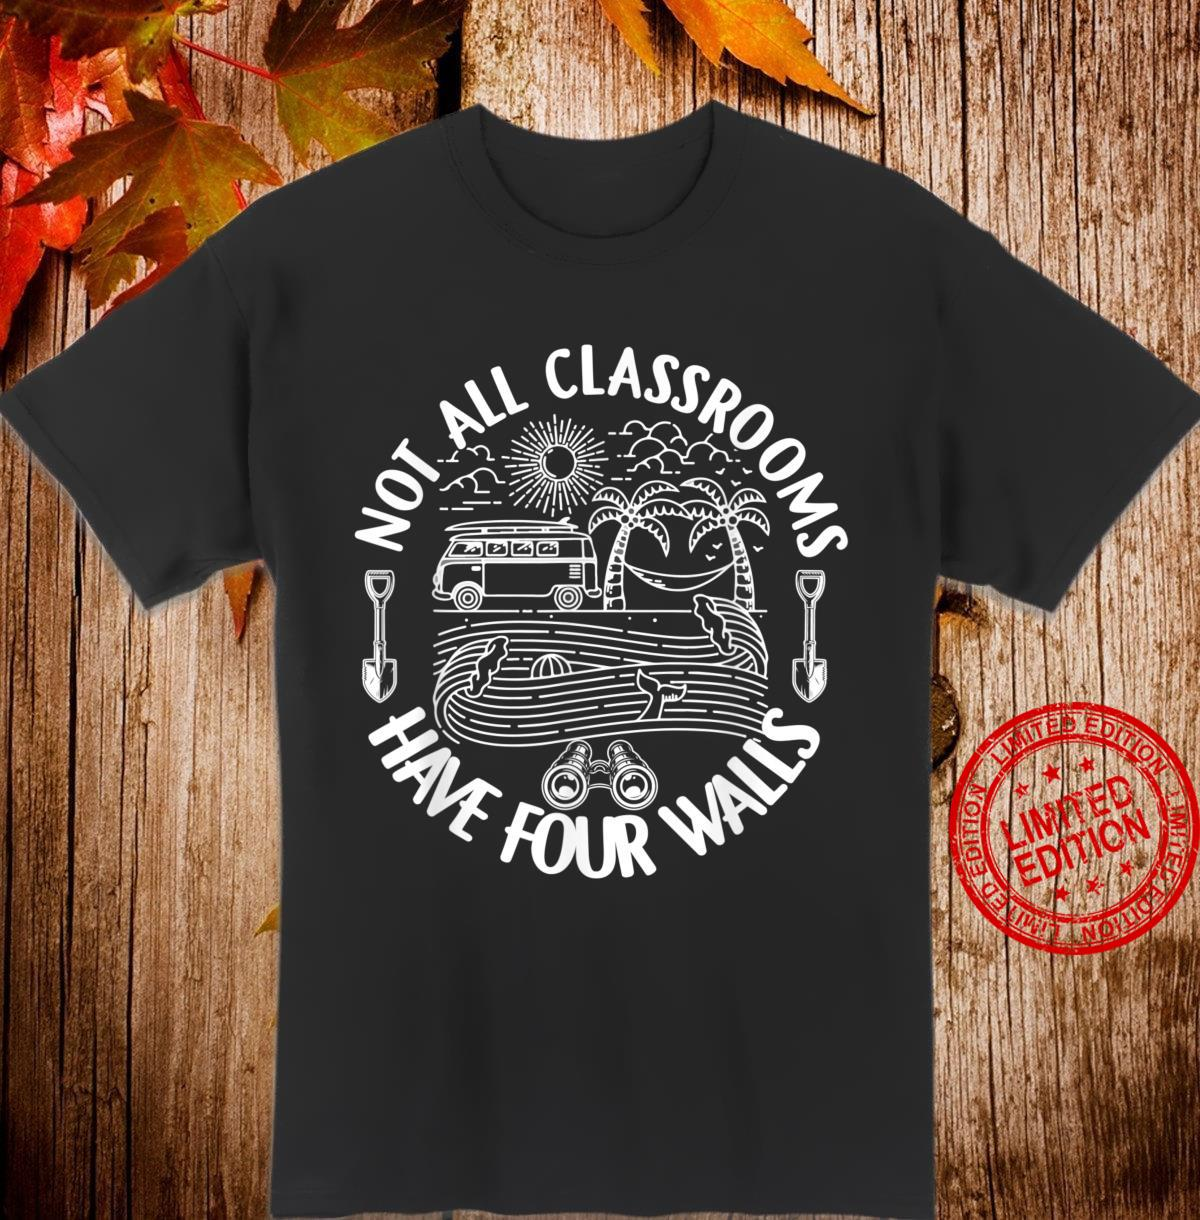 Not All Classroom Have Four Walls Homeschool Nature Shirt